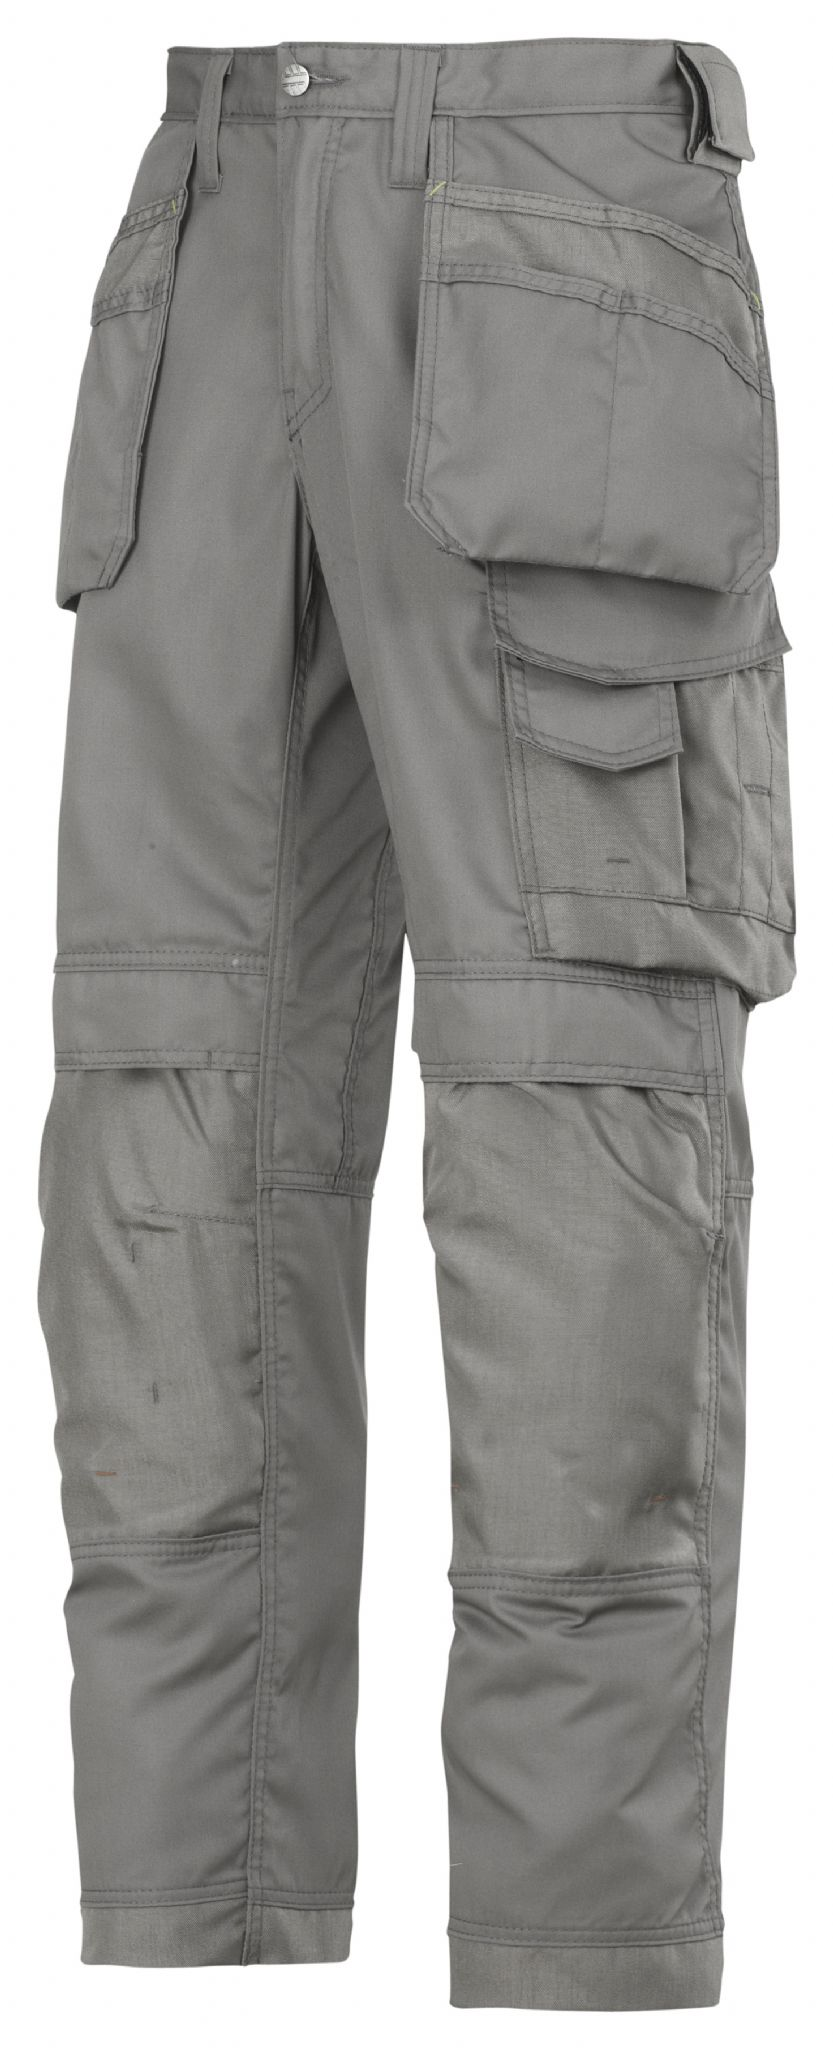 CoolTwill Snickers 3211 Craftsmen Holster Pocket Work Trousers